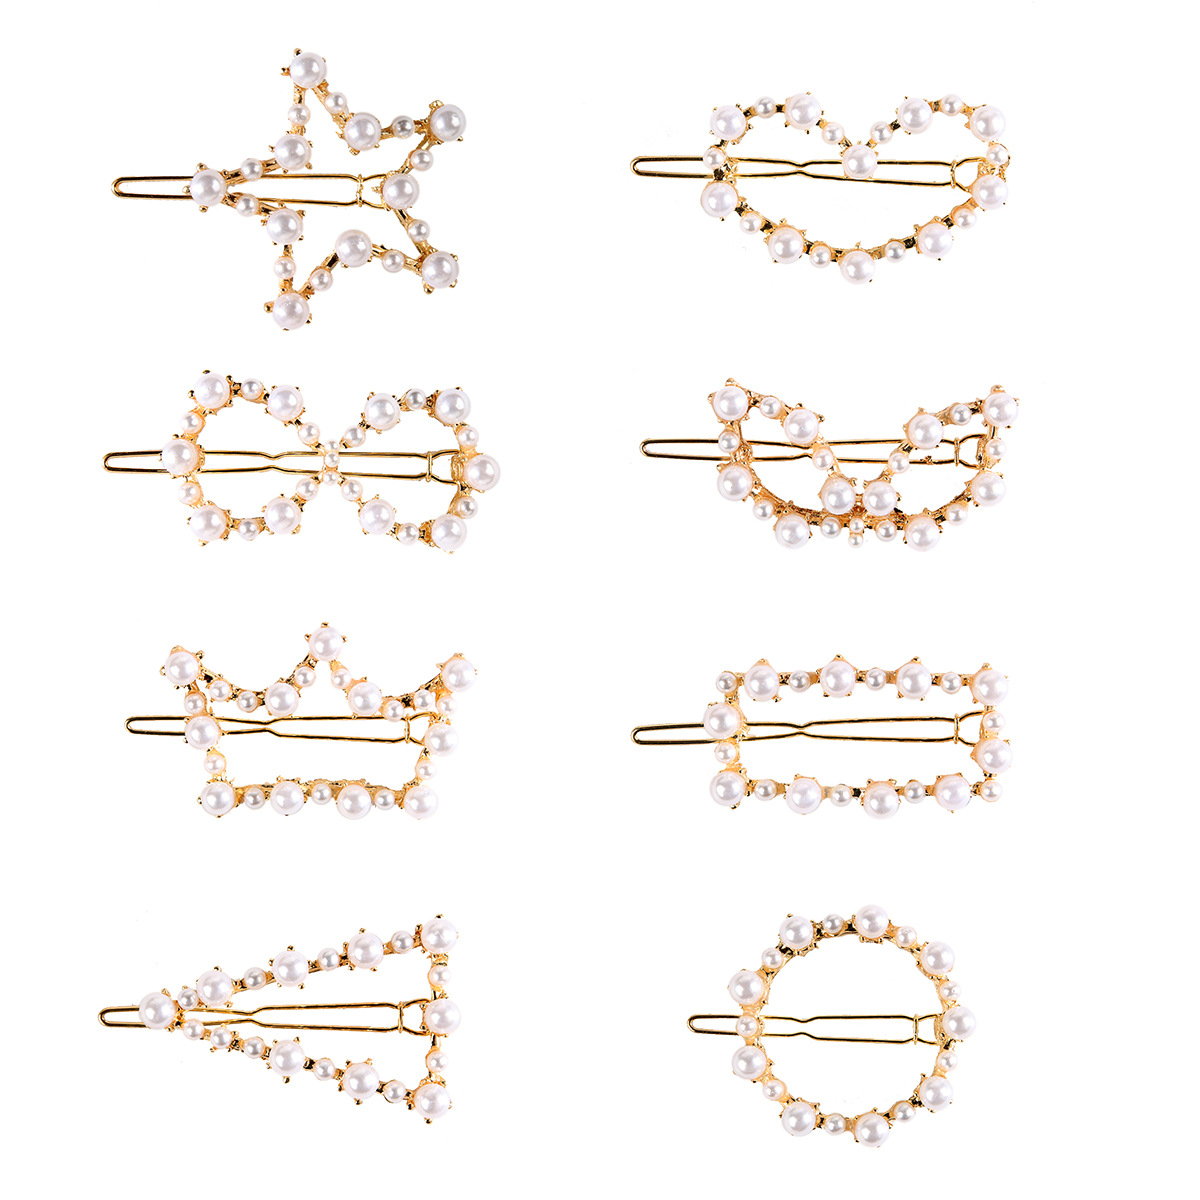 WENZHE Fashionable Pearl Hair Clip Gold Hair Pin Set Jewelry Women Girls Birthday Gift Set Bobby Pin Hair Accessories Featured Image